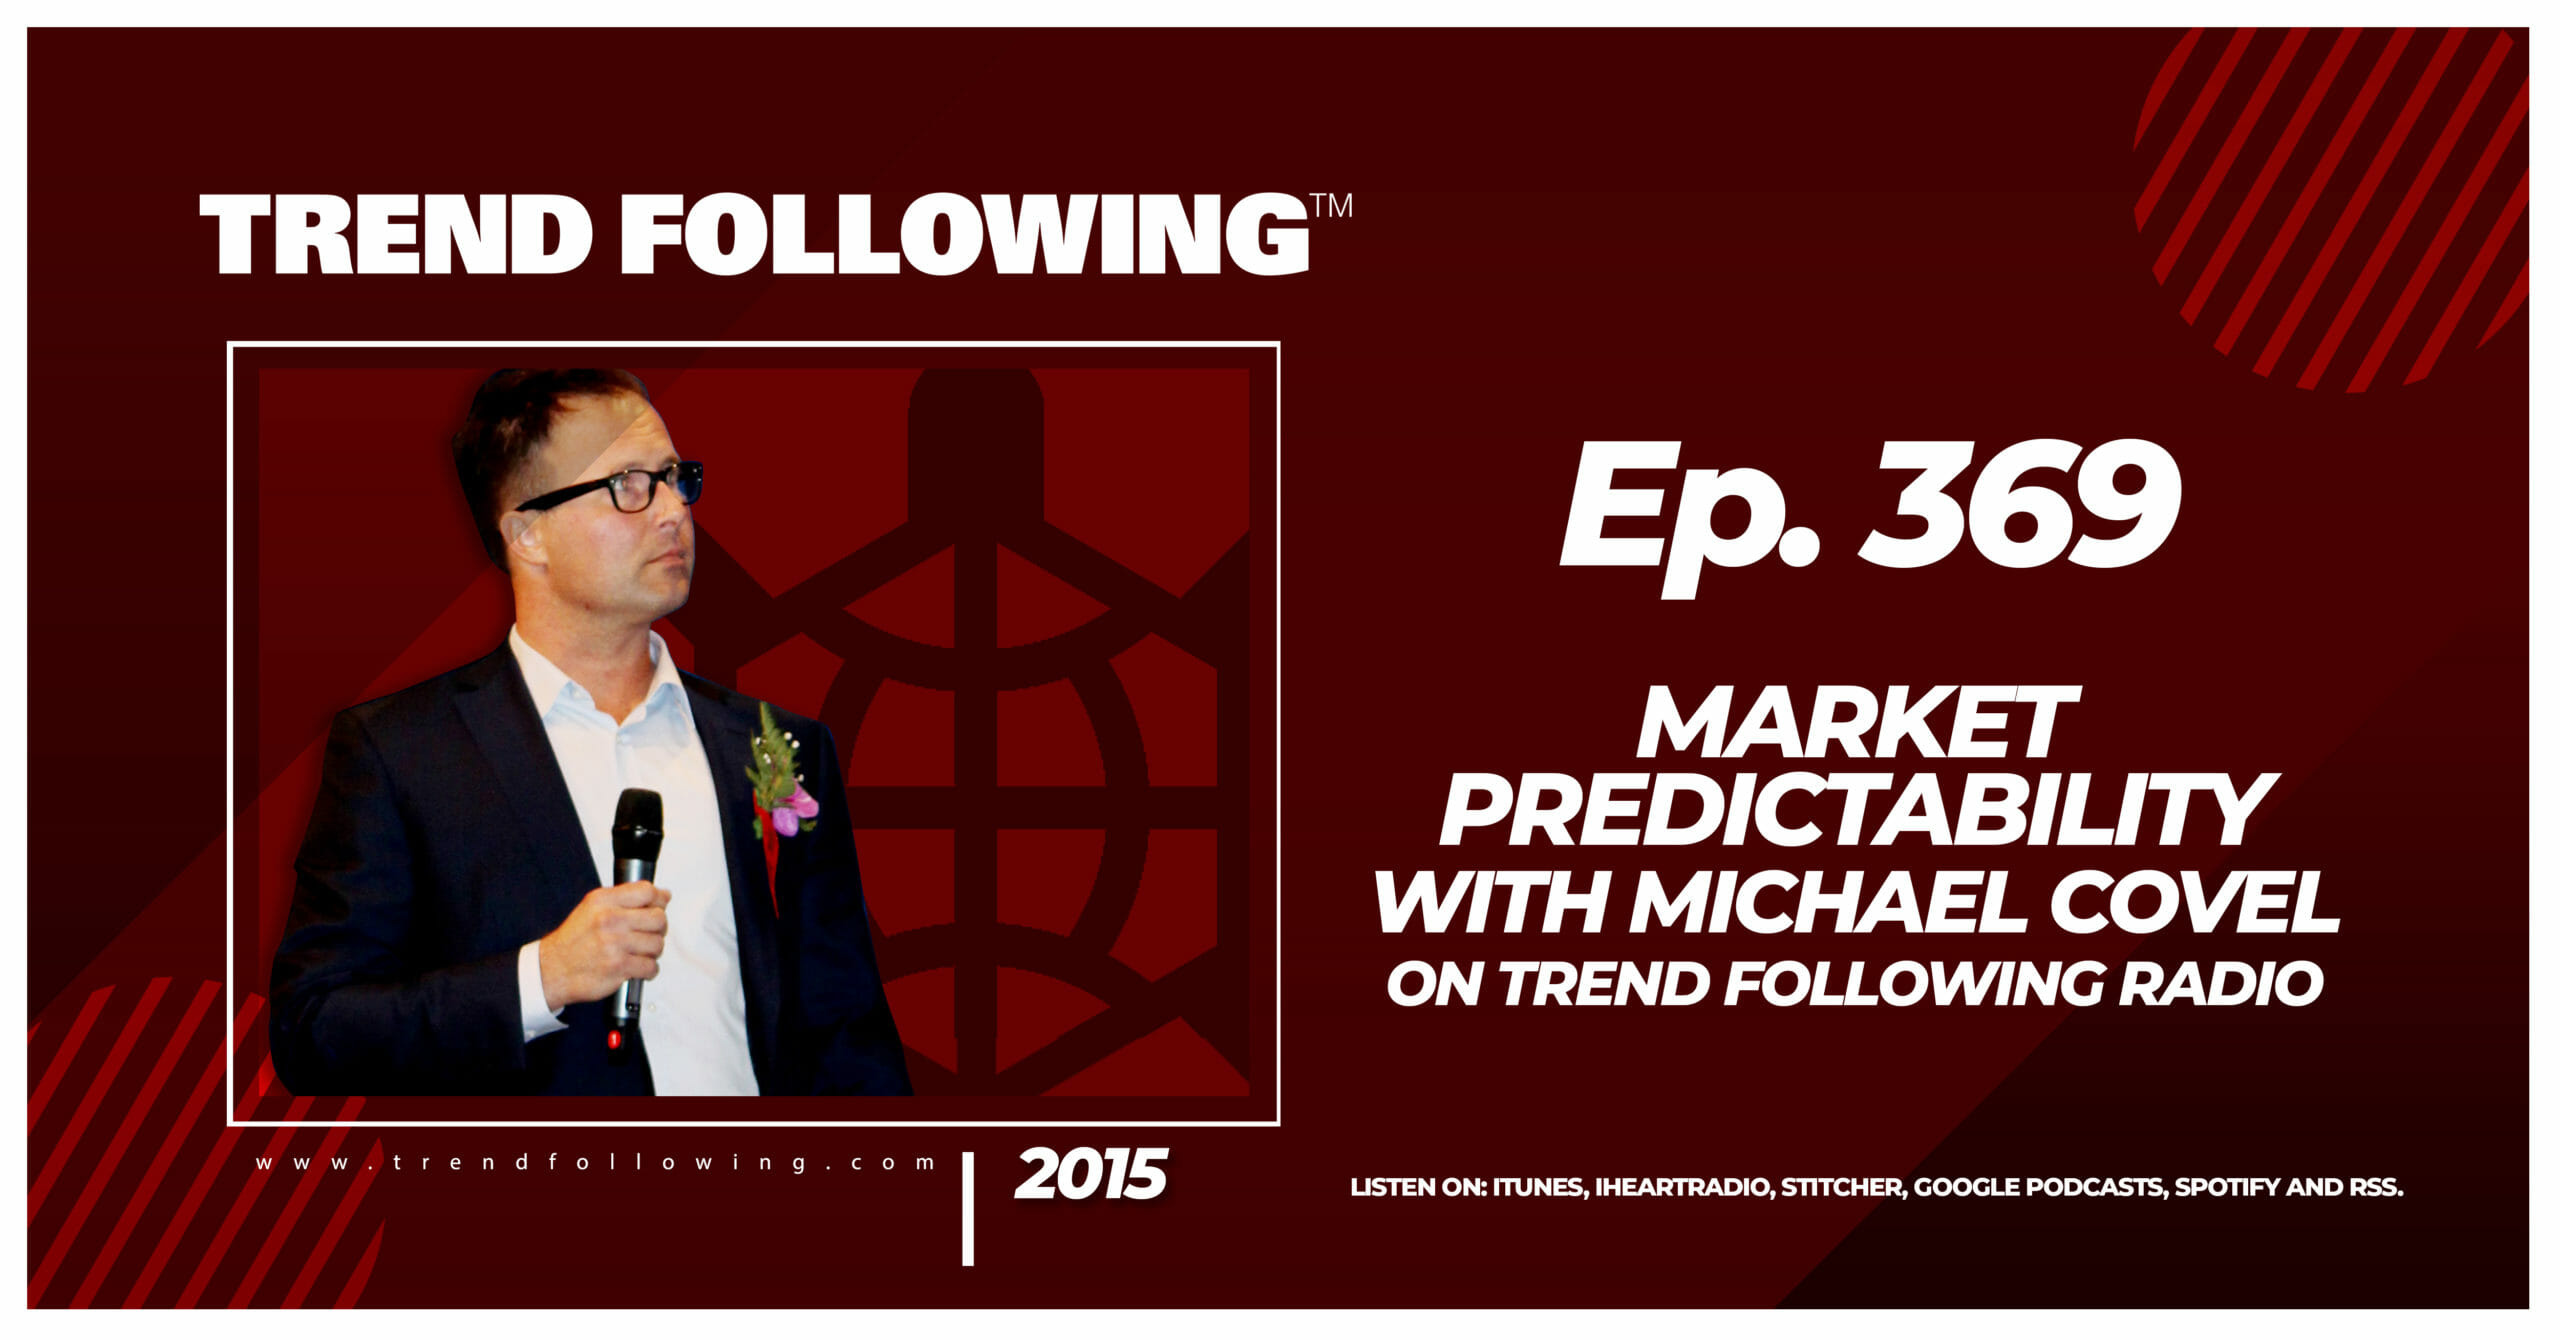 Market Predictability with Michael Covel on Trend Following Radio